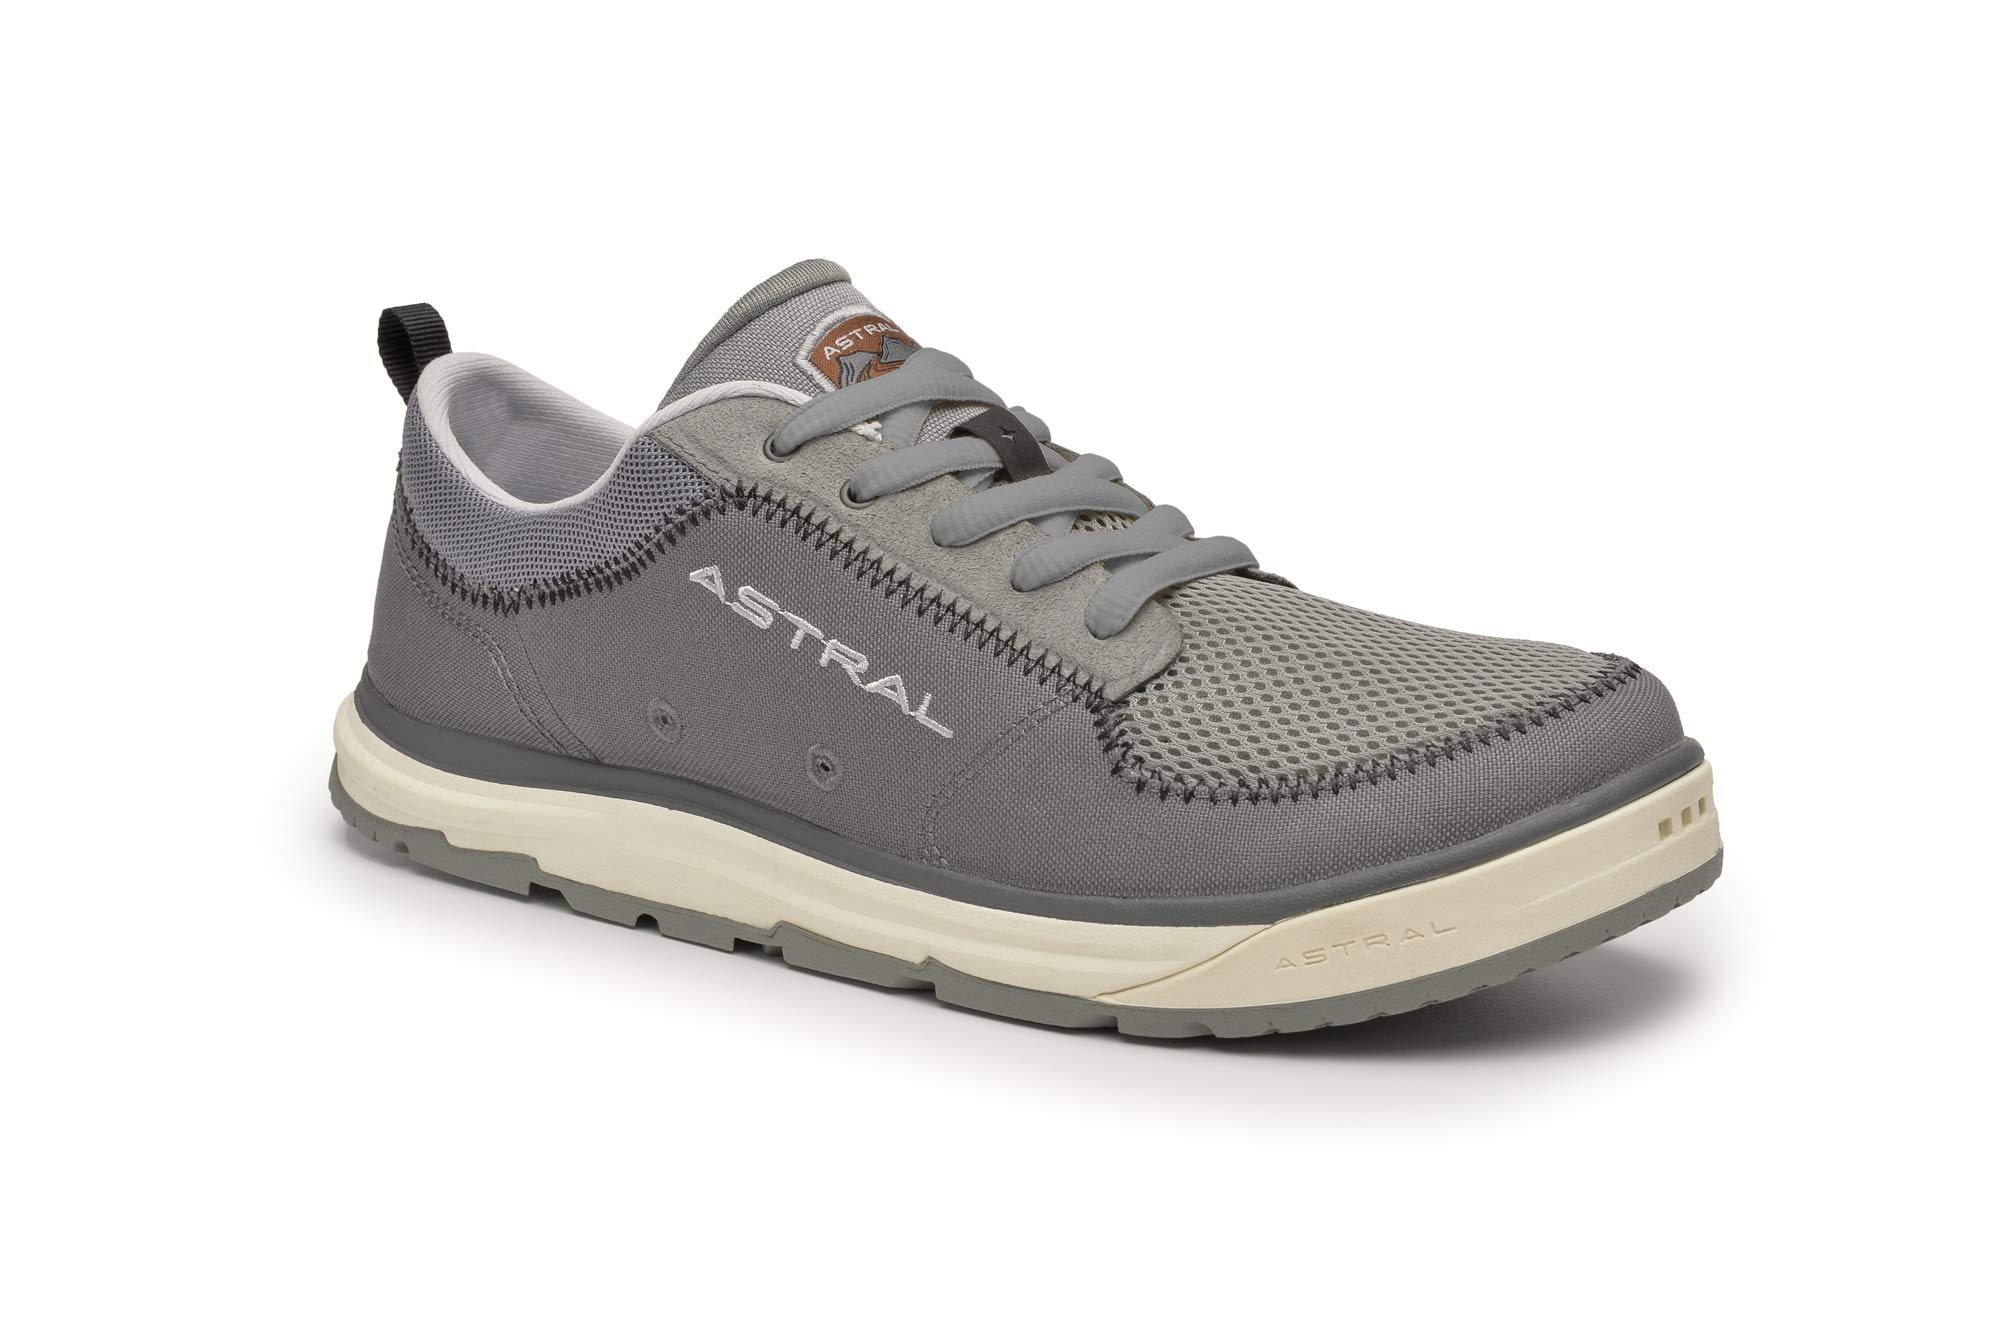 Astral Men's Brewer 2.0 Everyday Minimalist Outdoor Sneakers, Grippy and Quick Drying, Made for Water Sports, Travel, and Rock Scrambling, Storm Gray, M10.5 by Astral